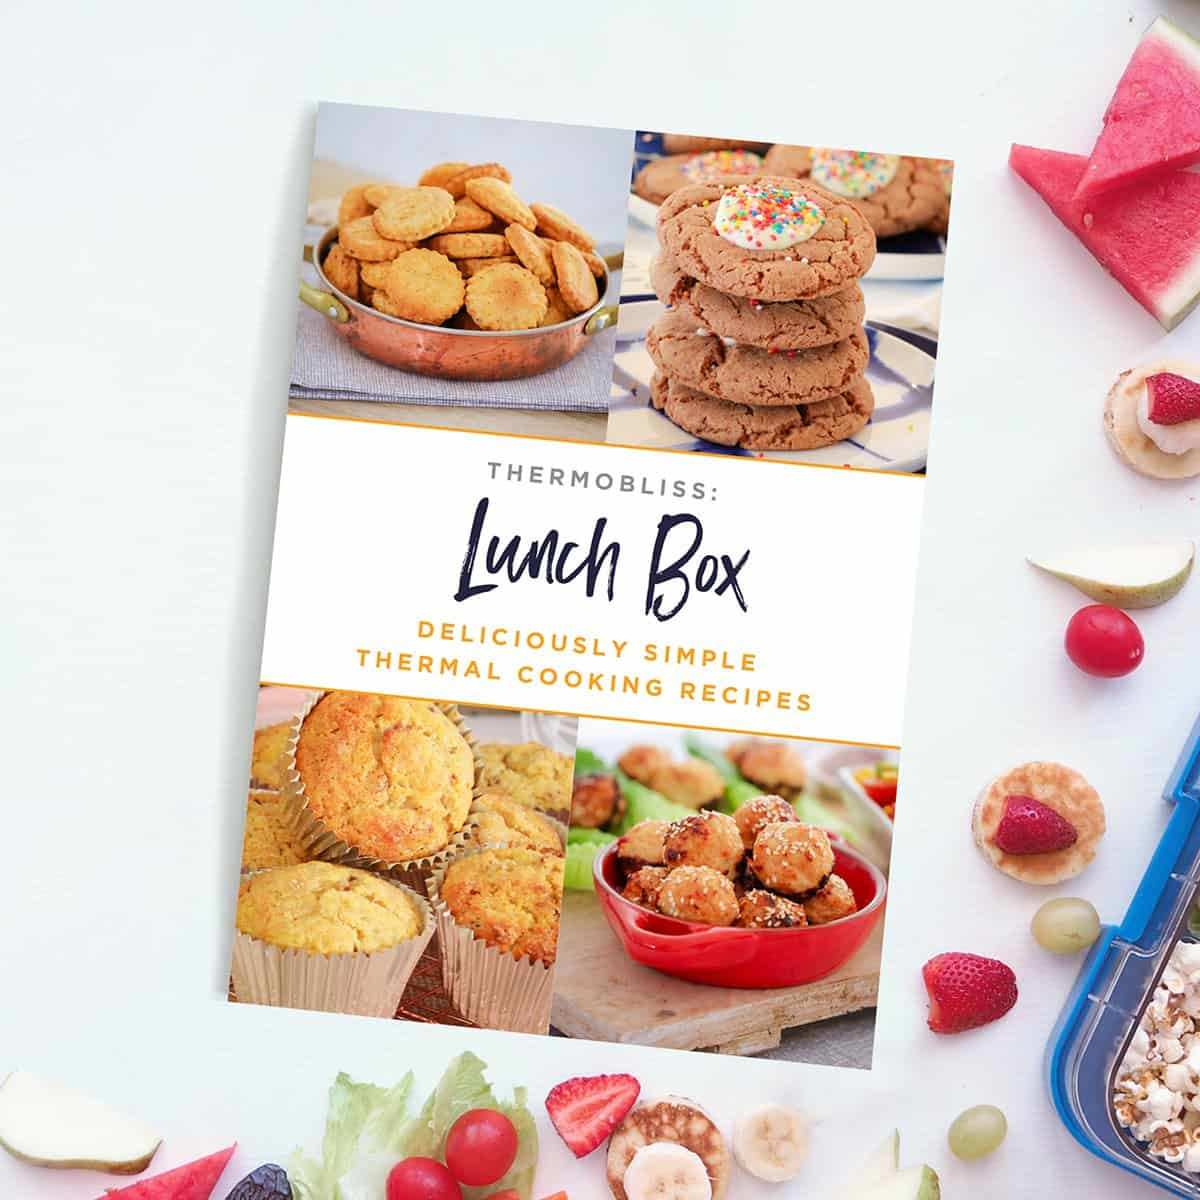 A Lunch Box recipe book with photos of food